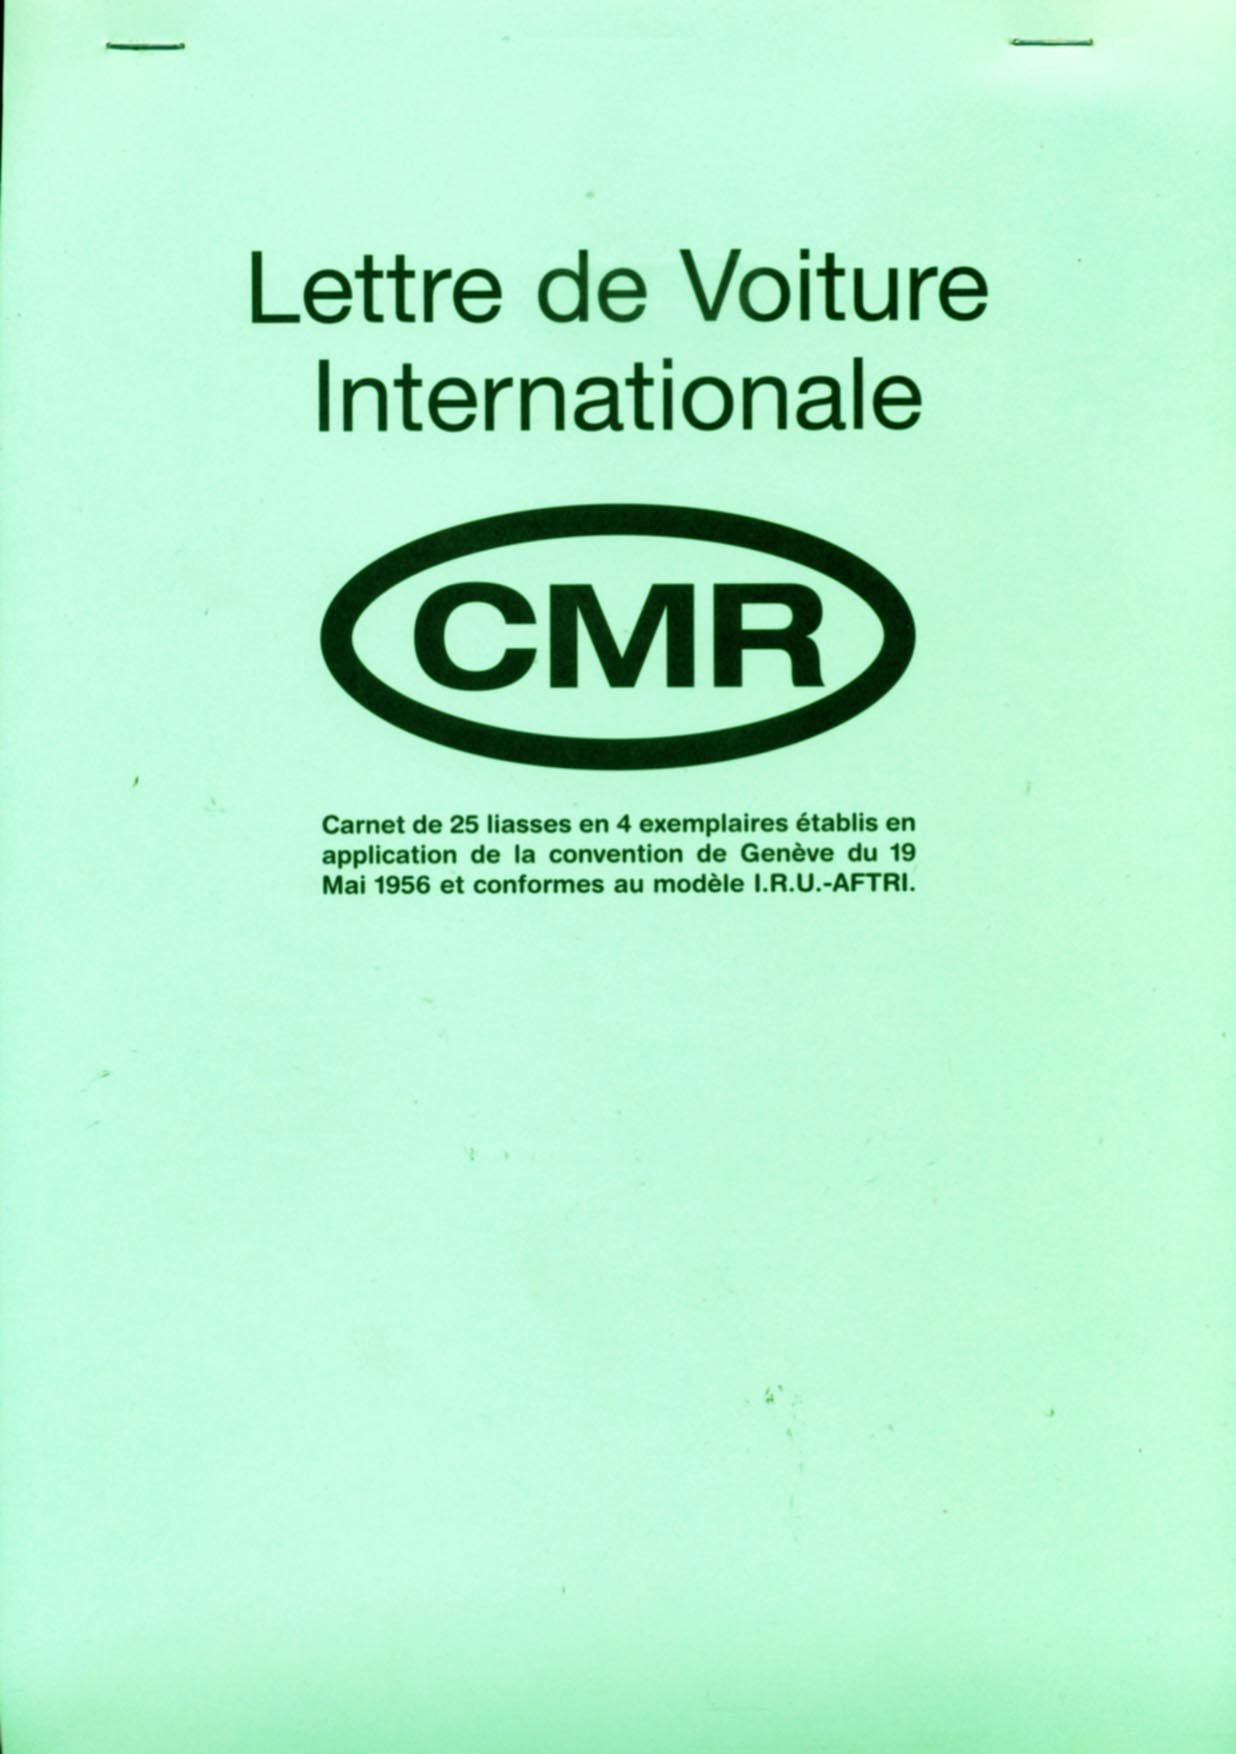 Lettre de Voiture InternationaleCMR